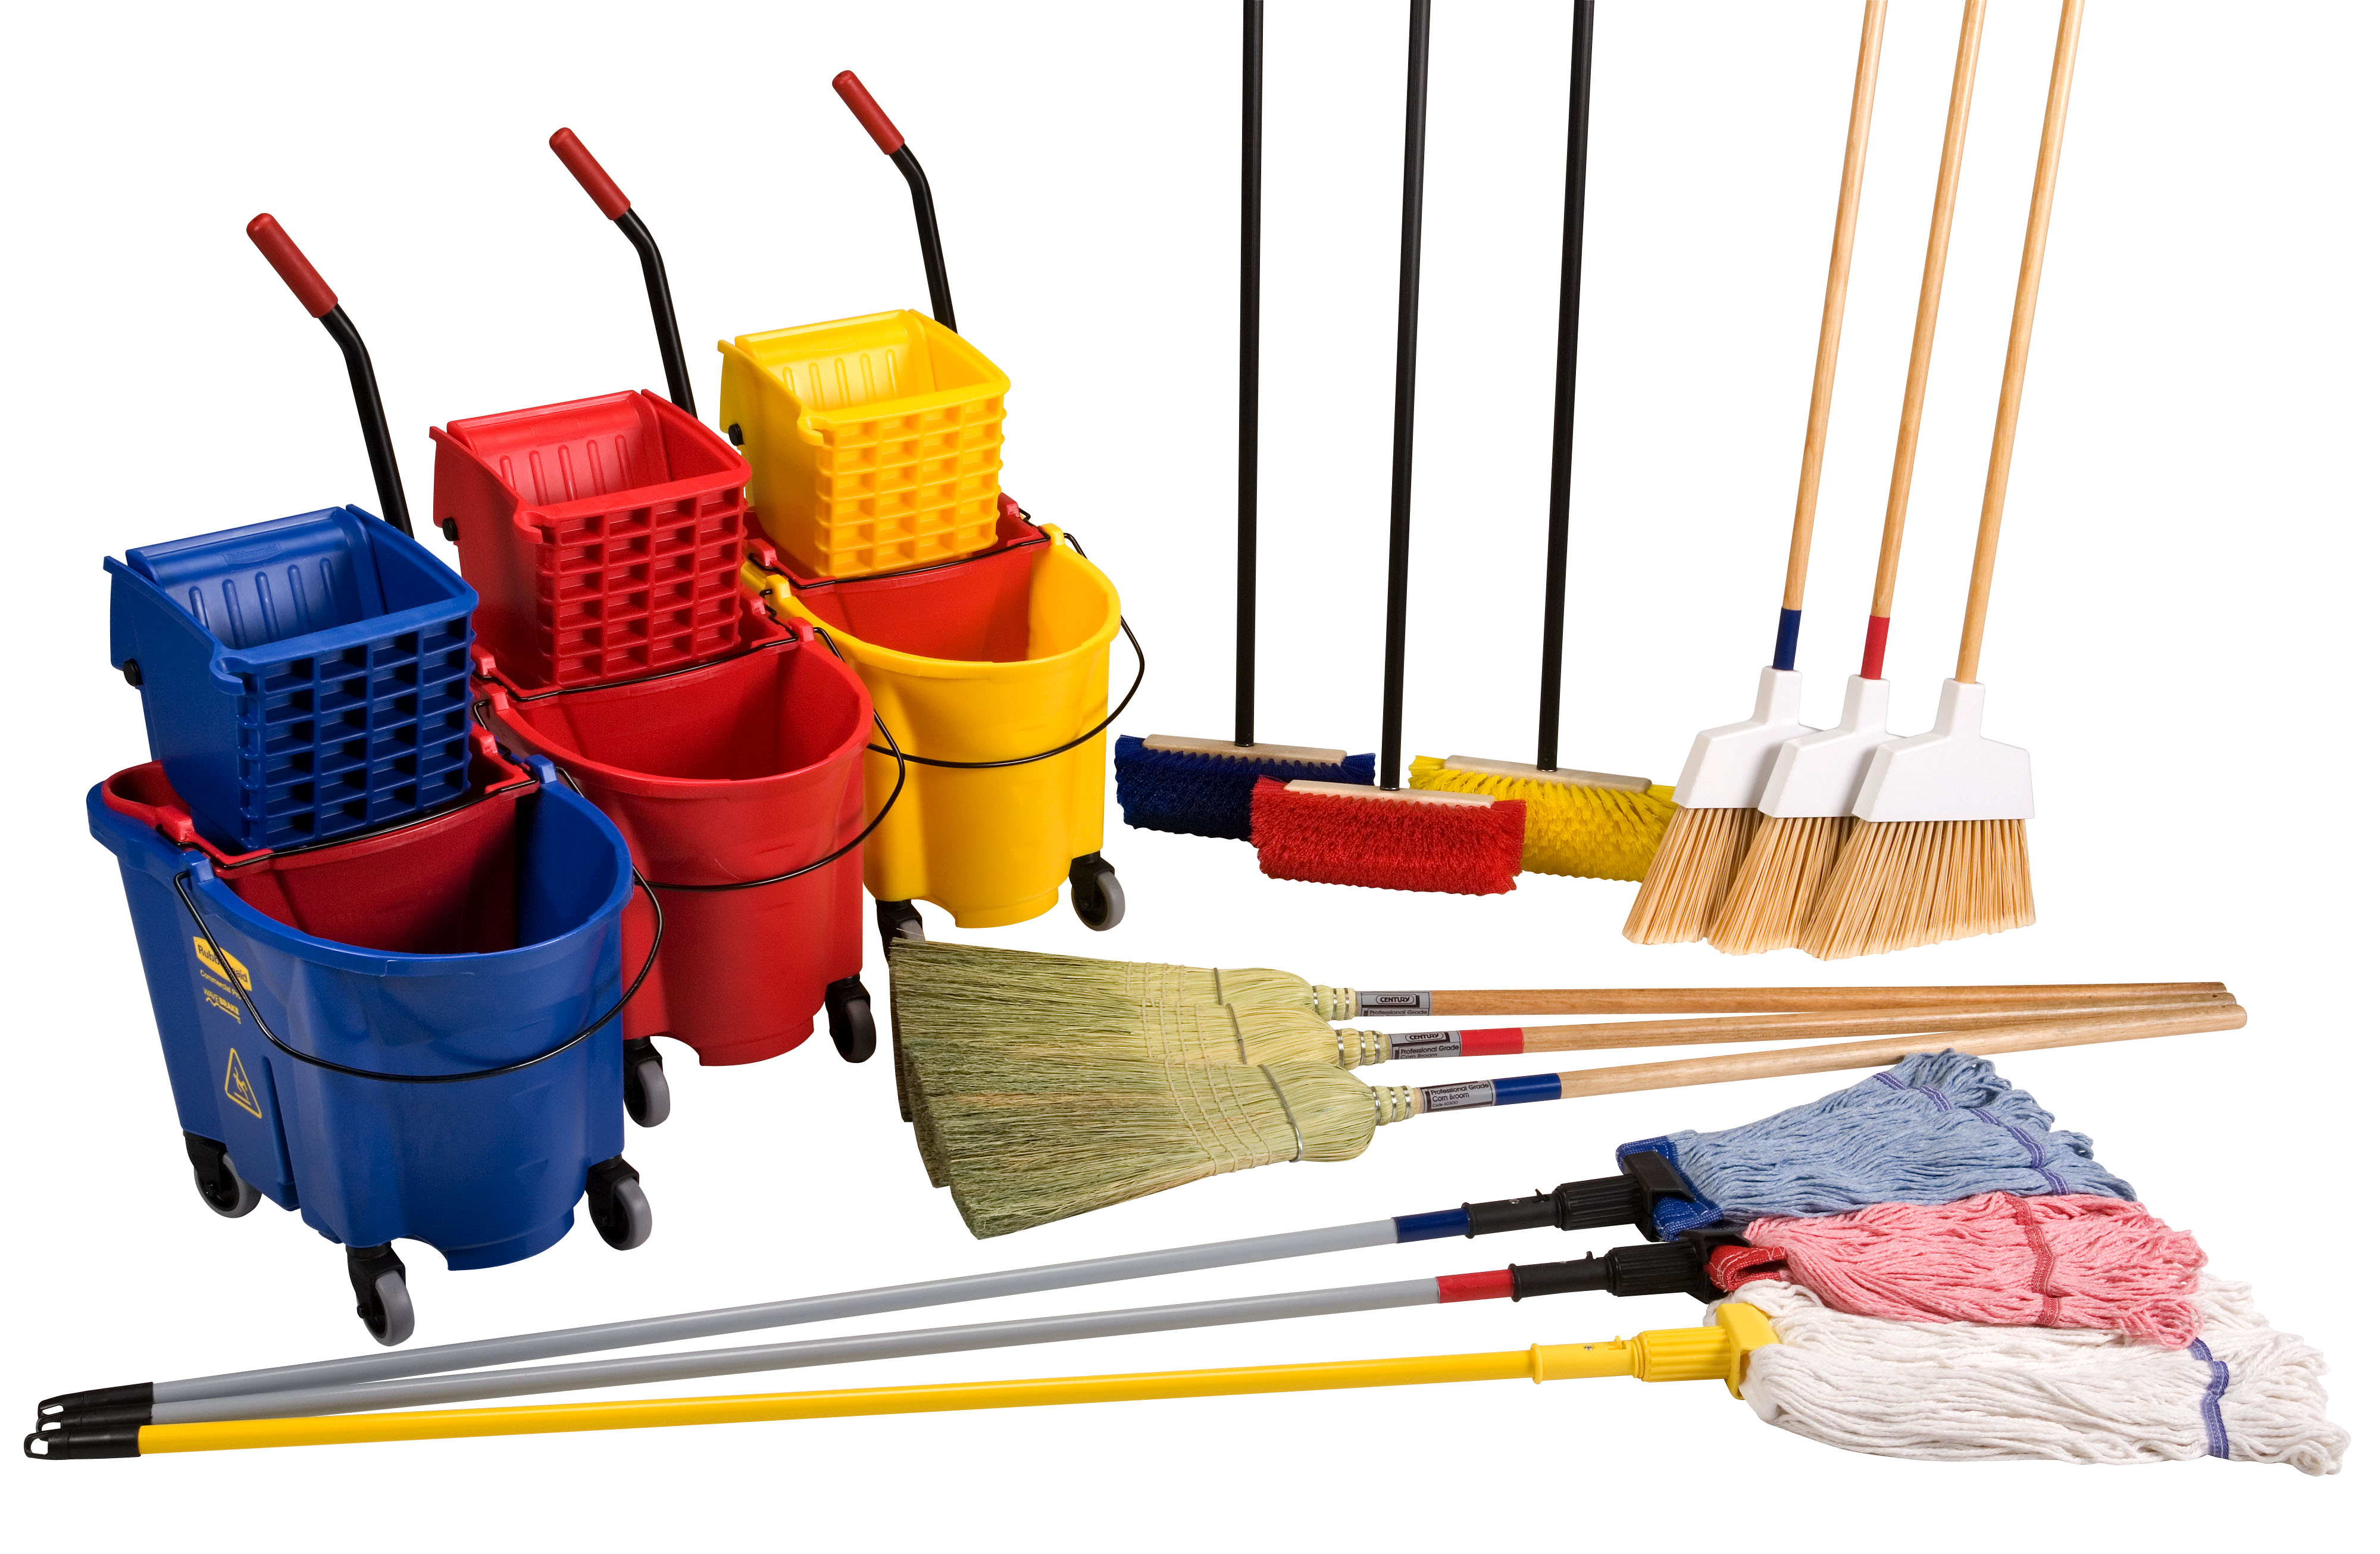 Mop clipart janitorial supply. Horizon company